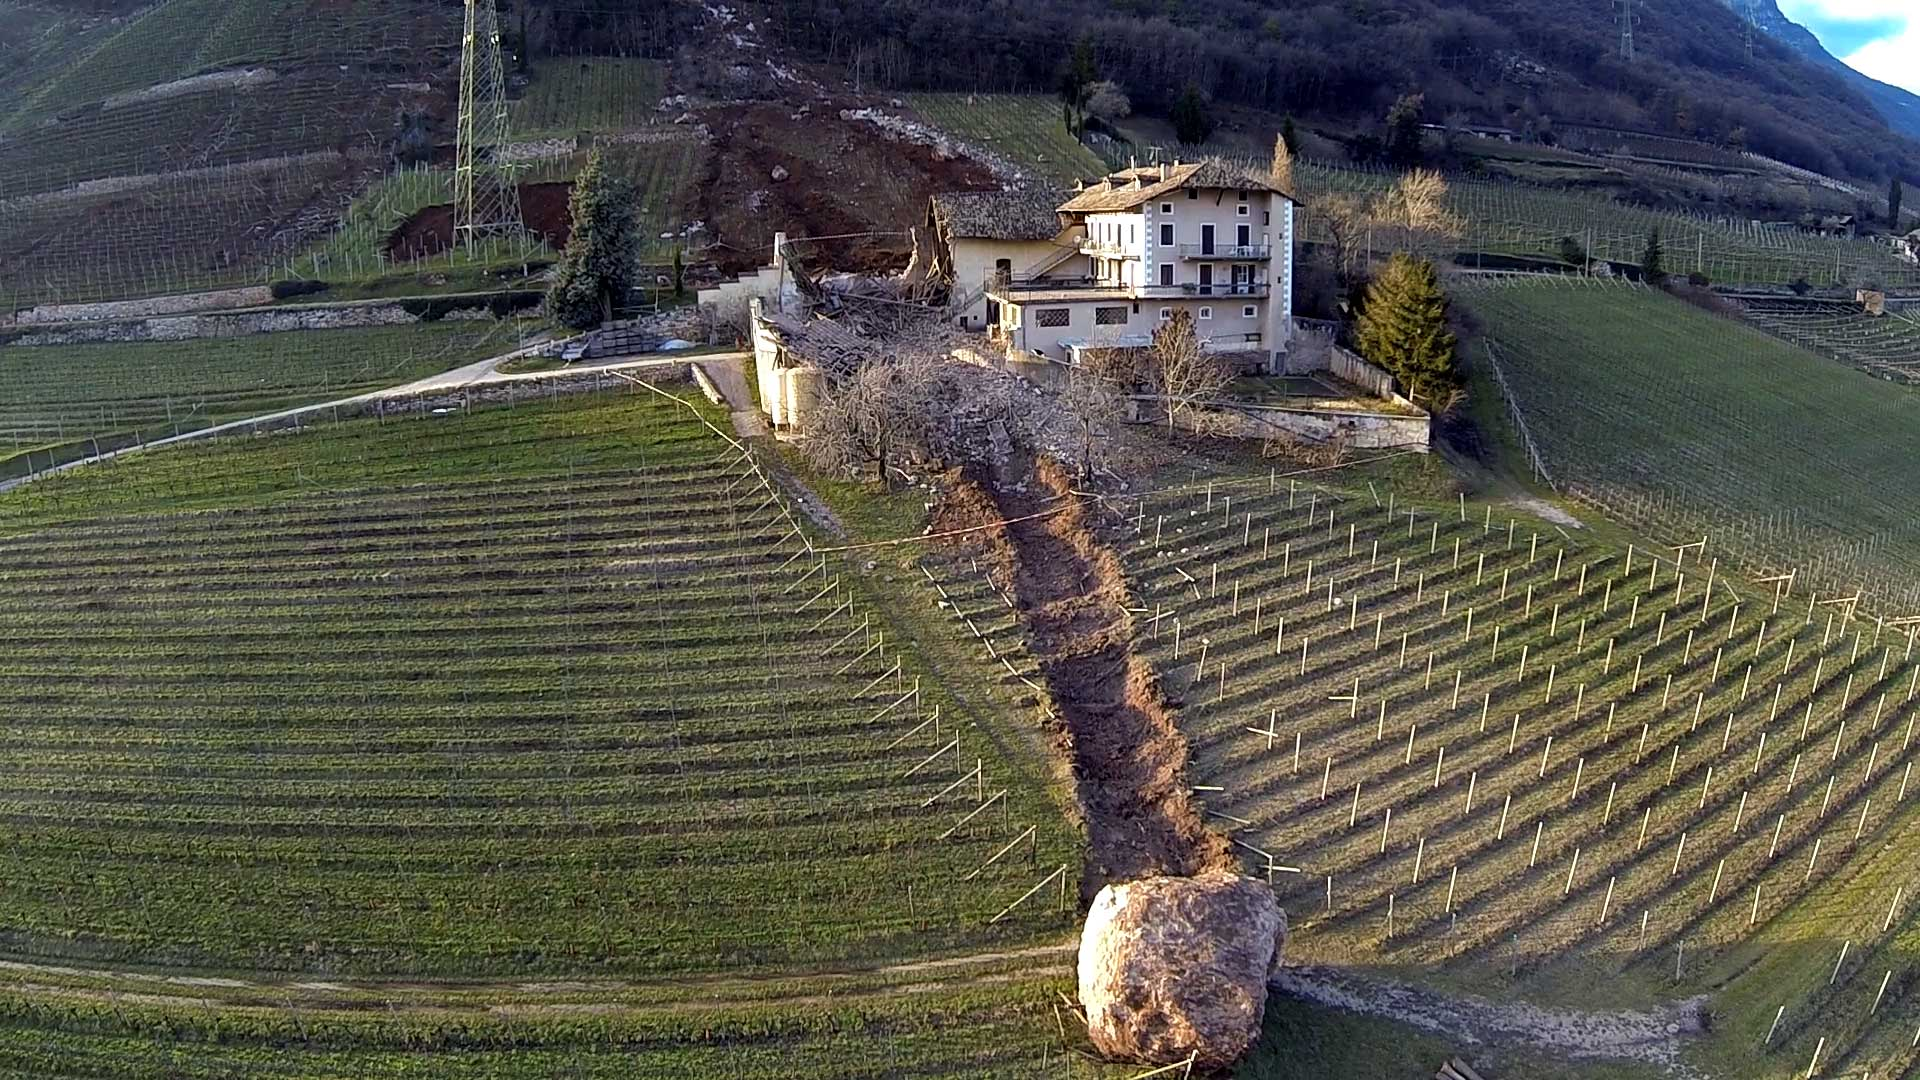 In this handout photo taken on Jan. 23, 2014, a huge boulder is seen after it missed a farm house by less than a meter, destroying the barn, and stopped in the vineyard, while a second giant boulder, which detached during the same landslide on Jan. 21, 2014, stopped next to the house, in Ronchi di Termeno, in Northern Italy.